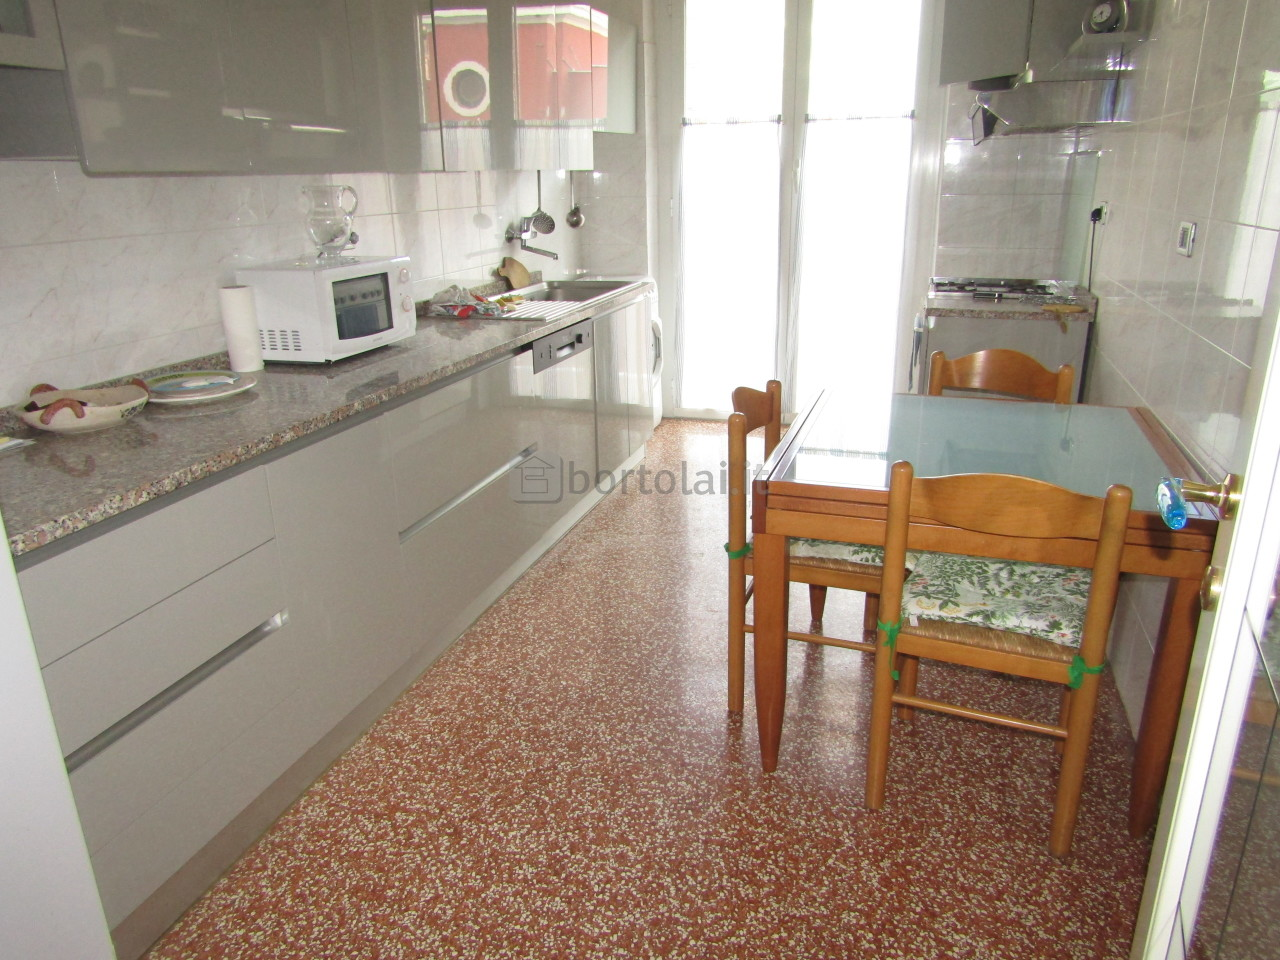 genova affitto quart: quarto immobiliare bortolai.it srl